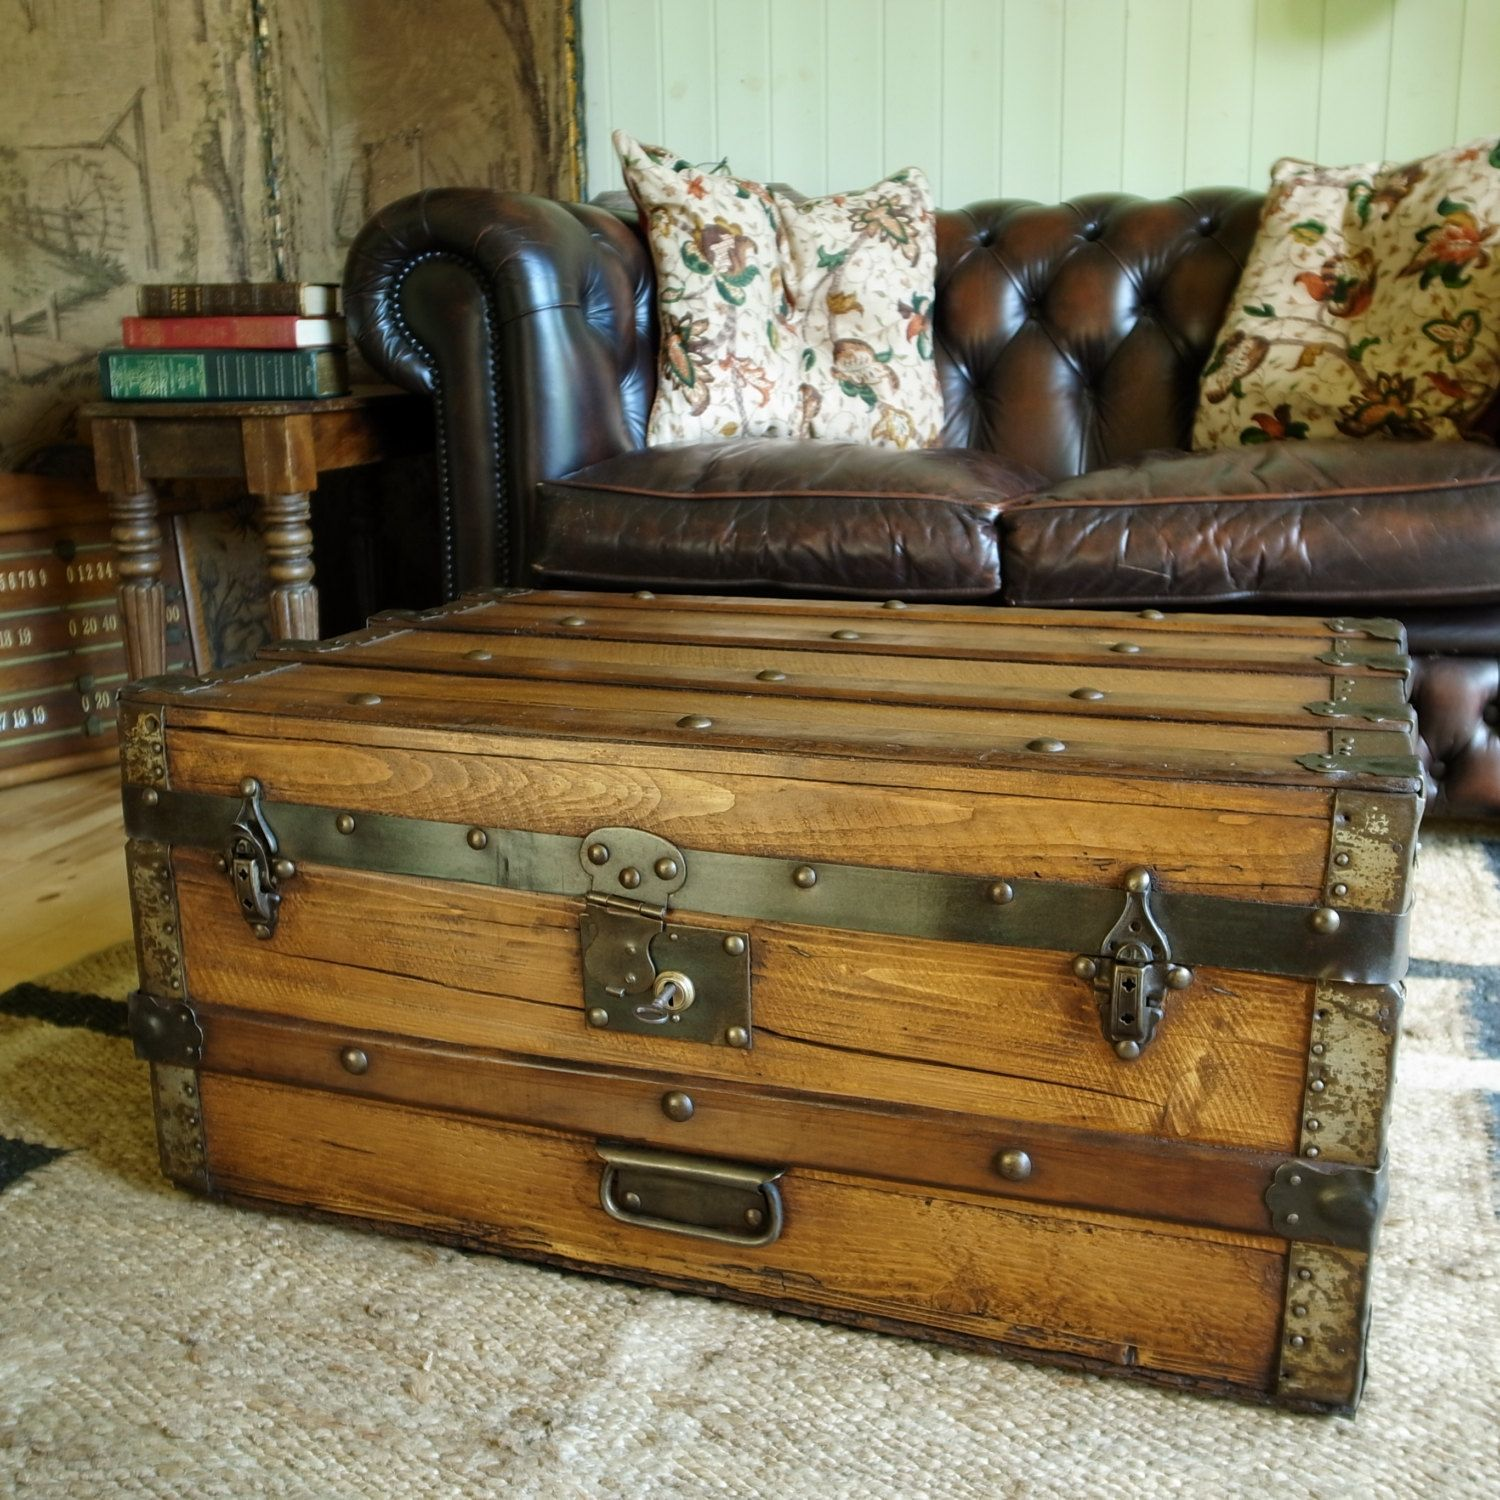 VINTAGE STEAMER TRUNK Table Antique Victorian Travel Trunk Storage